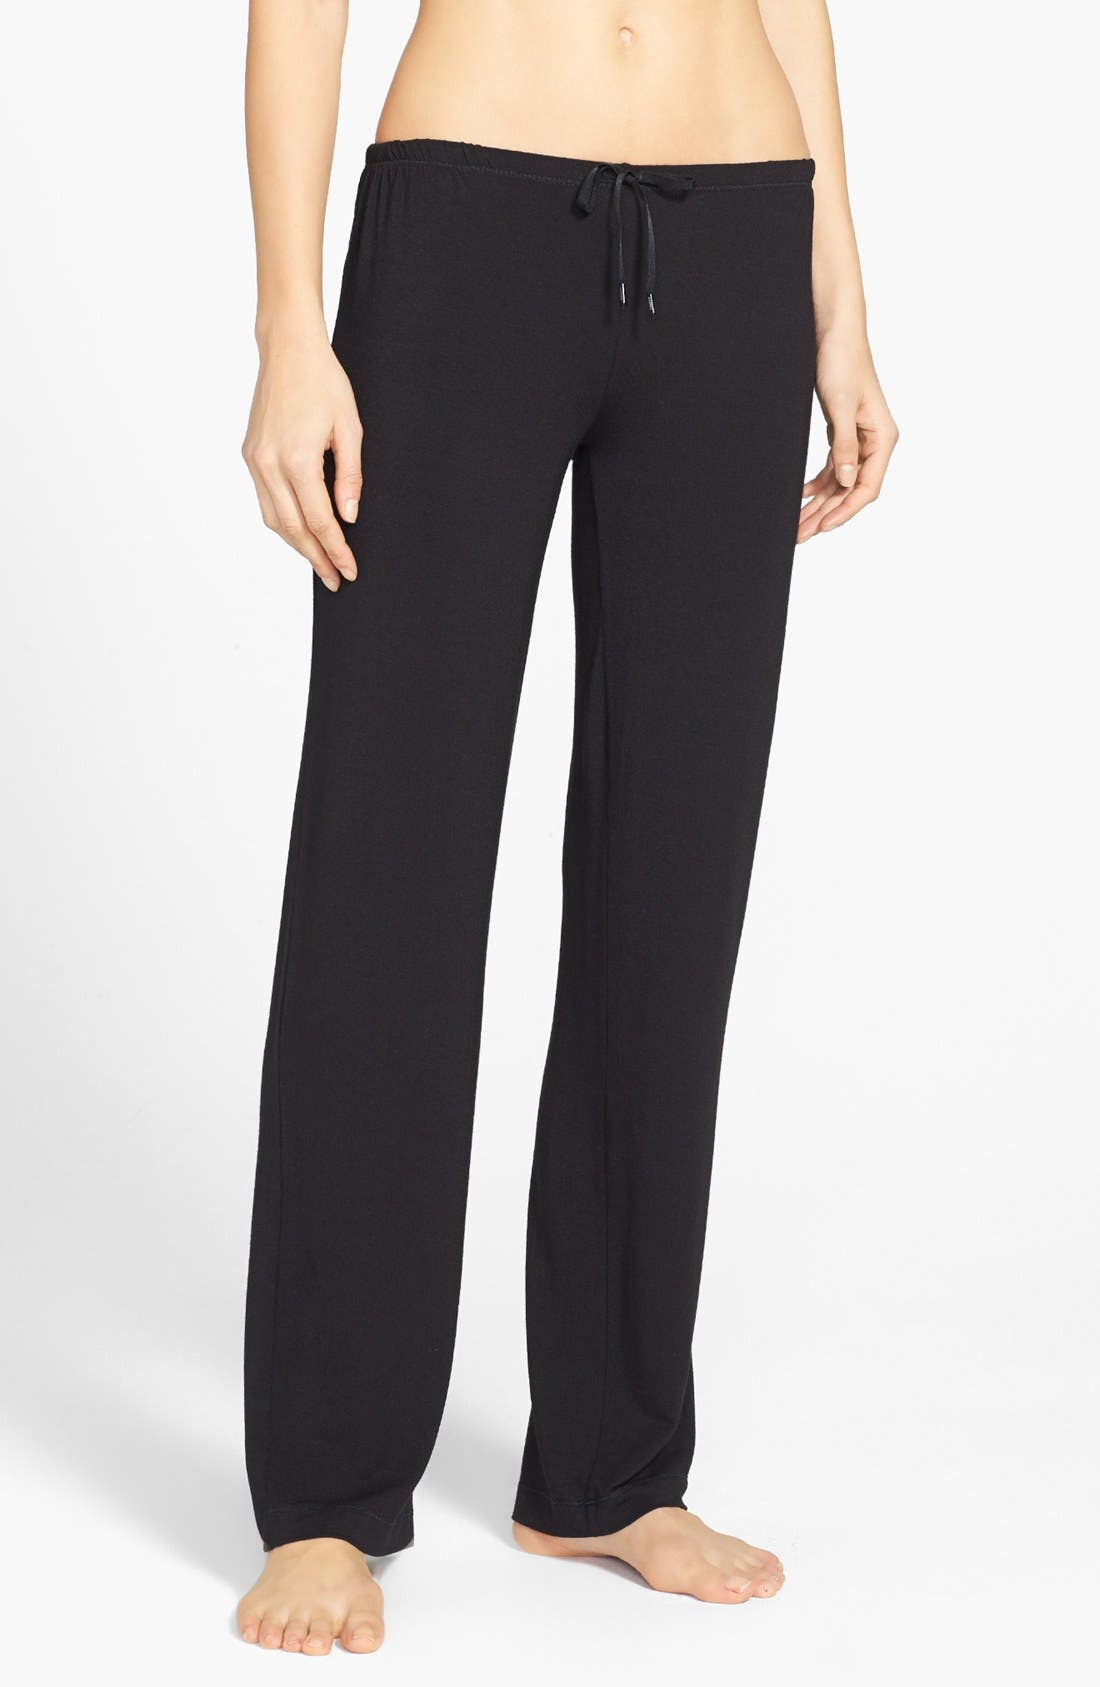 Alternate Image 1 Selected - DKNY 'City Essentials' Pants